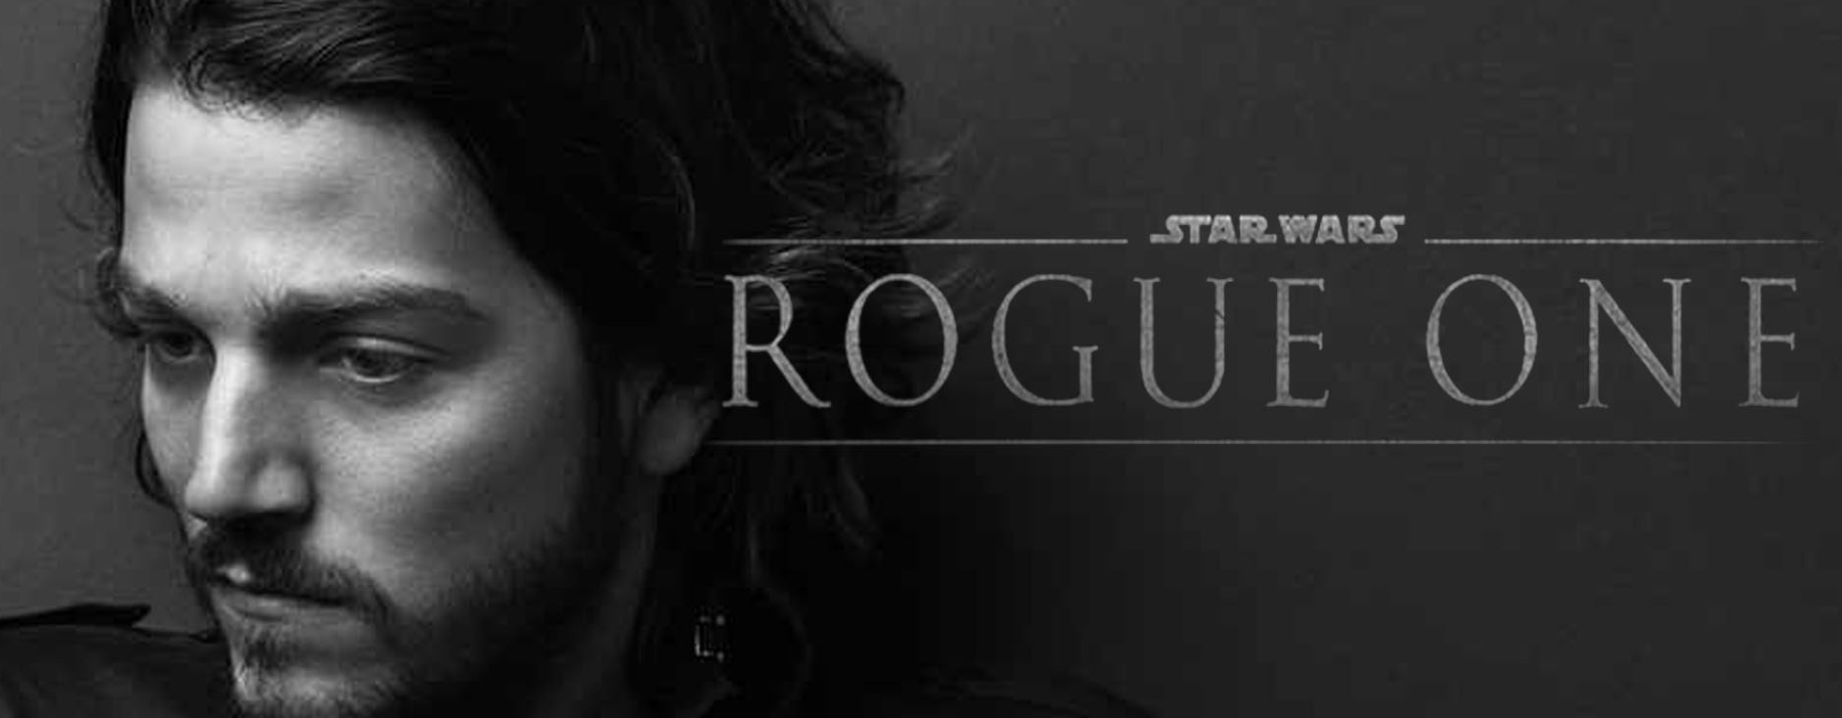 Rogue One, a Star Wars story – or once again The Mexican saves the day – El mexicano salva la ...